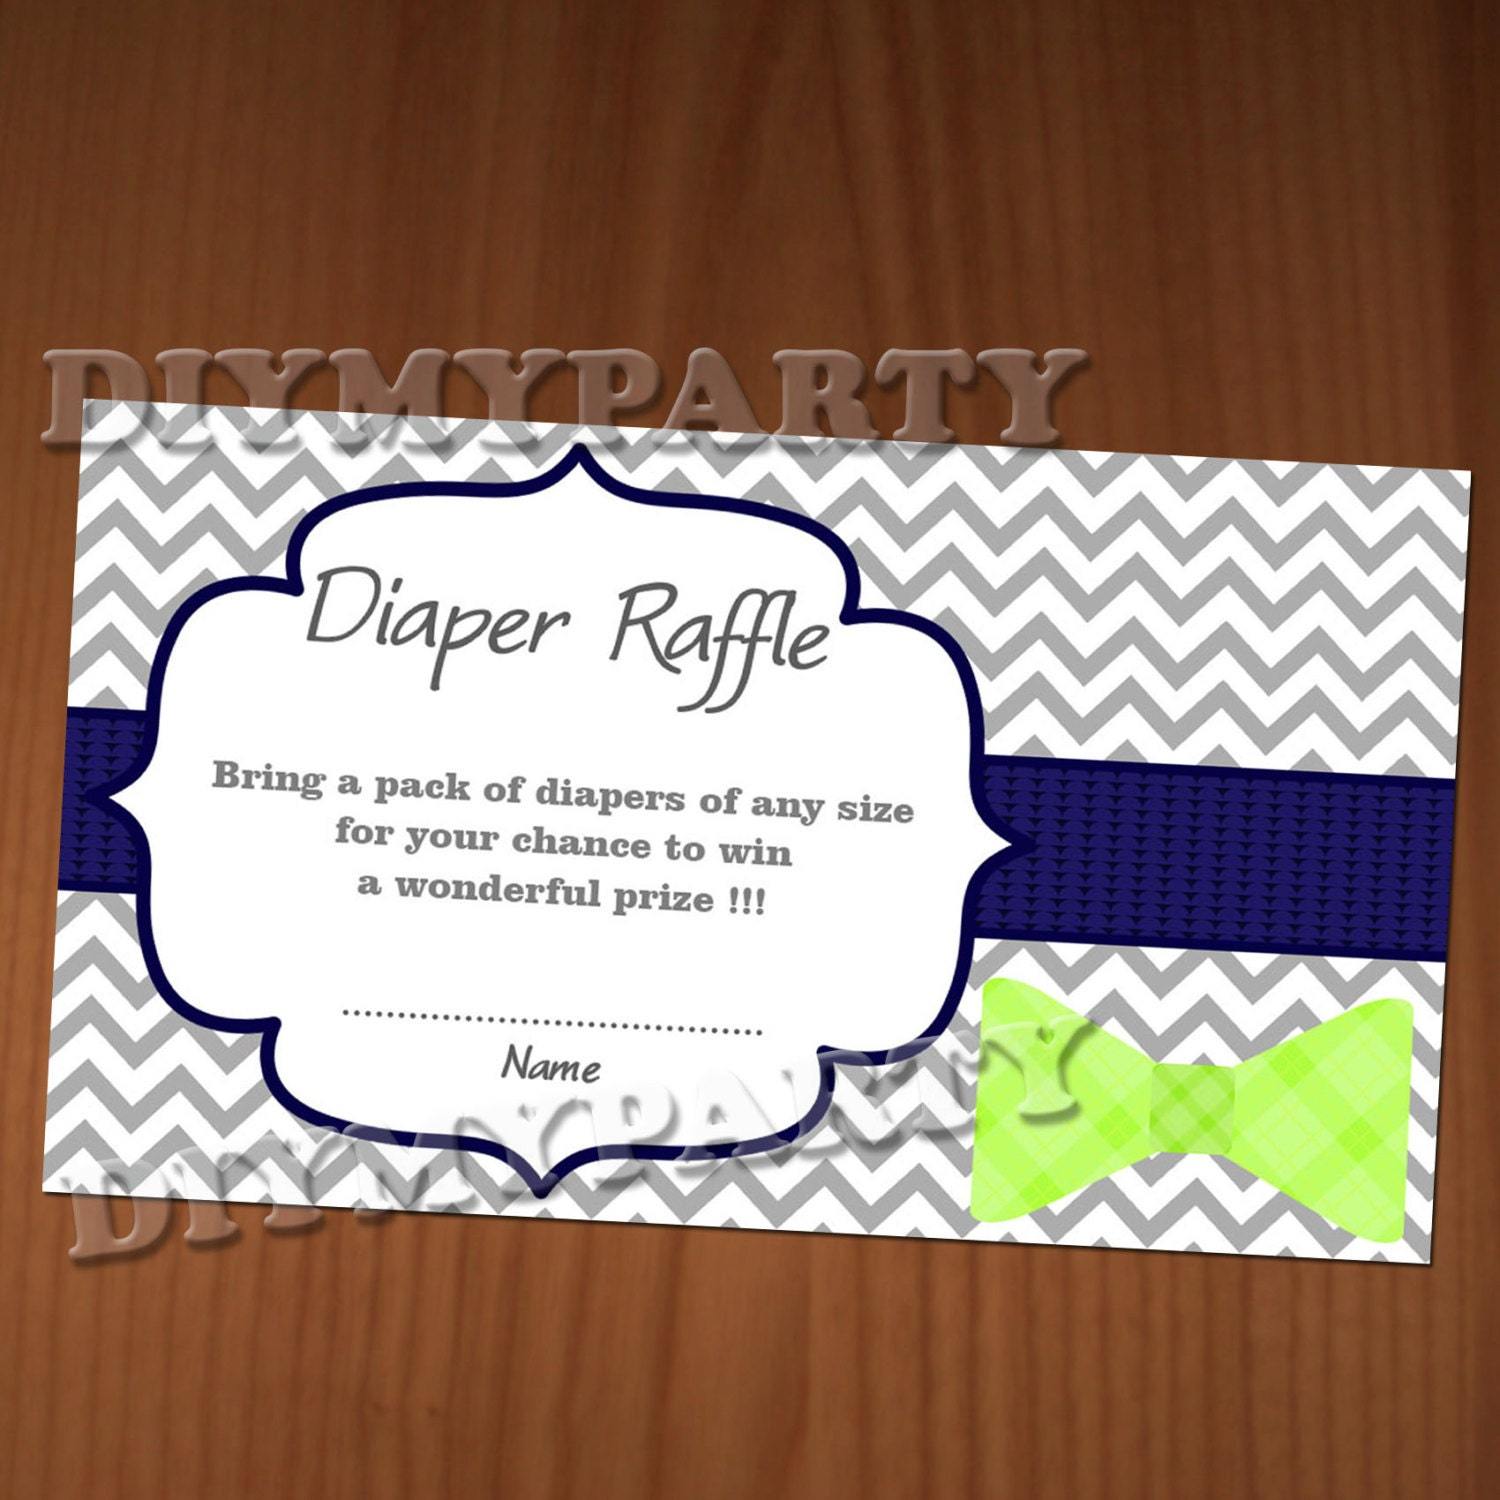 Diaper Raffle Ticket Template Diaper raffle ticket